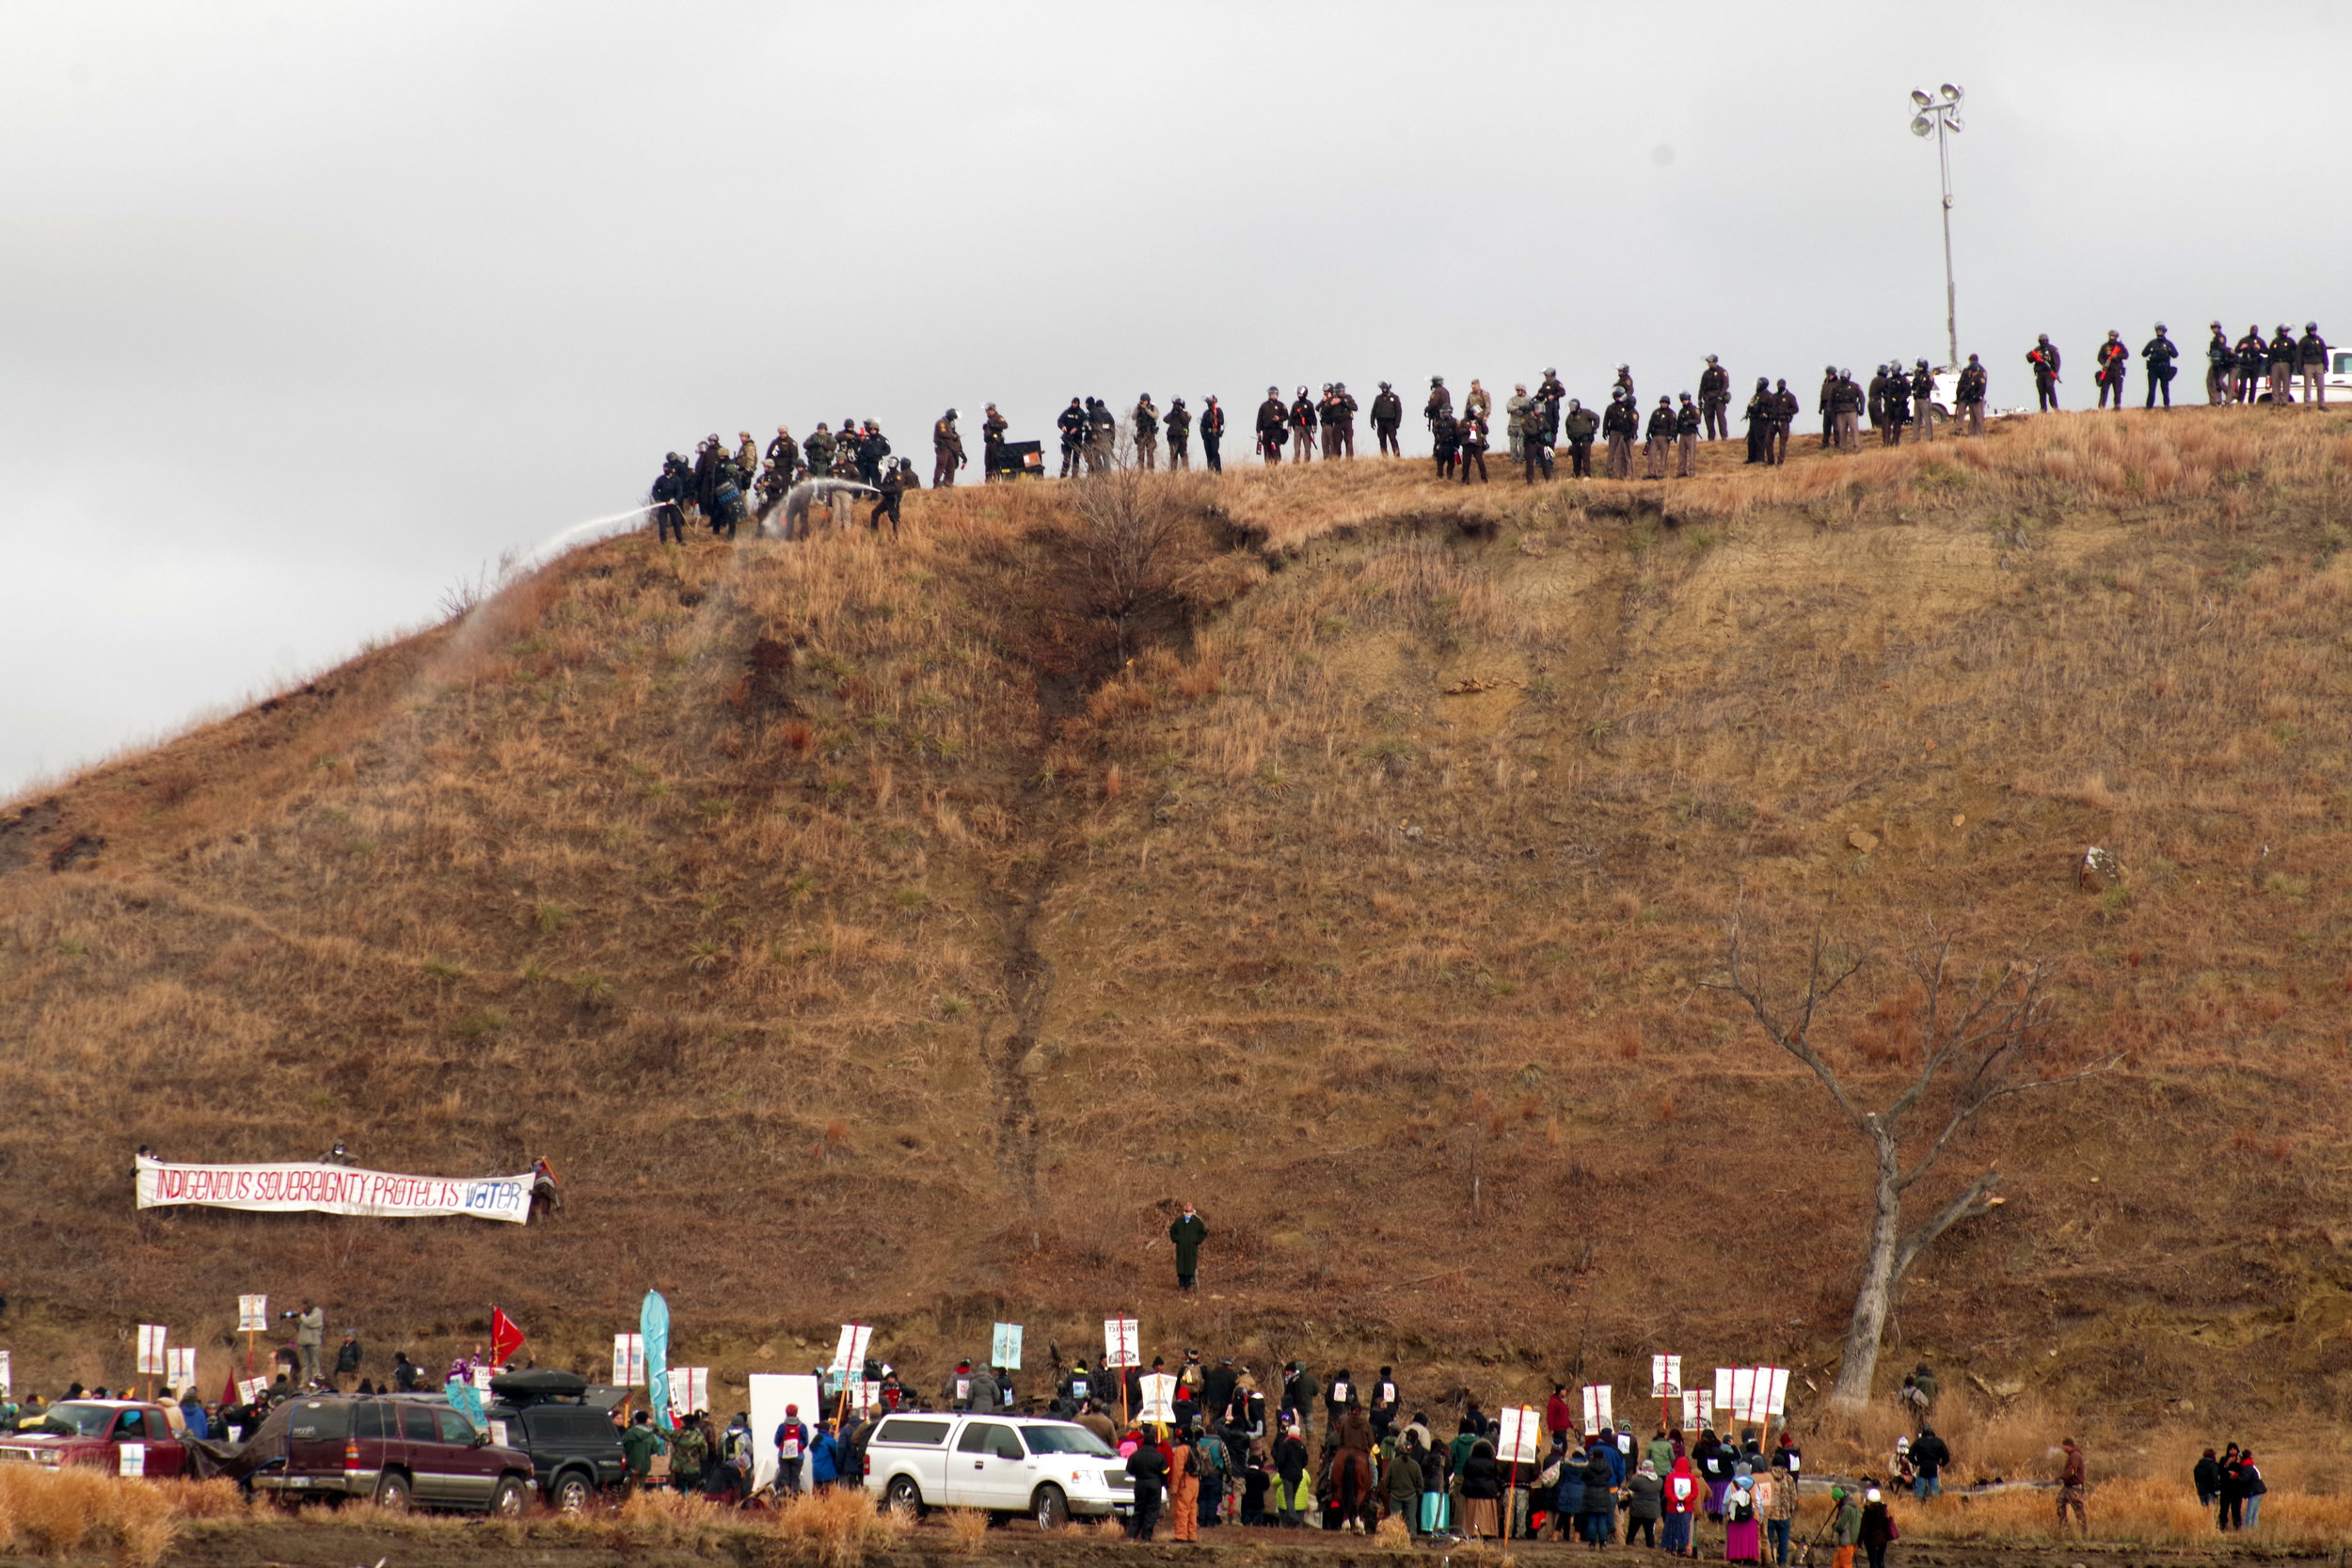 Police standing at the top of Turtle Island with hoses.